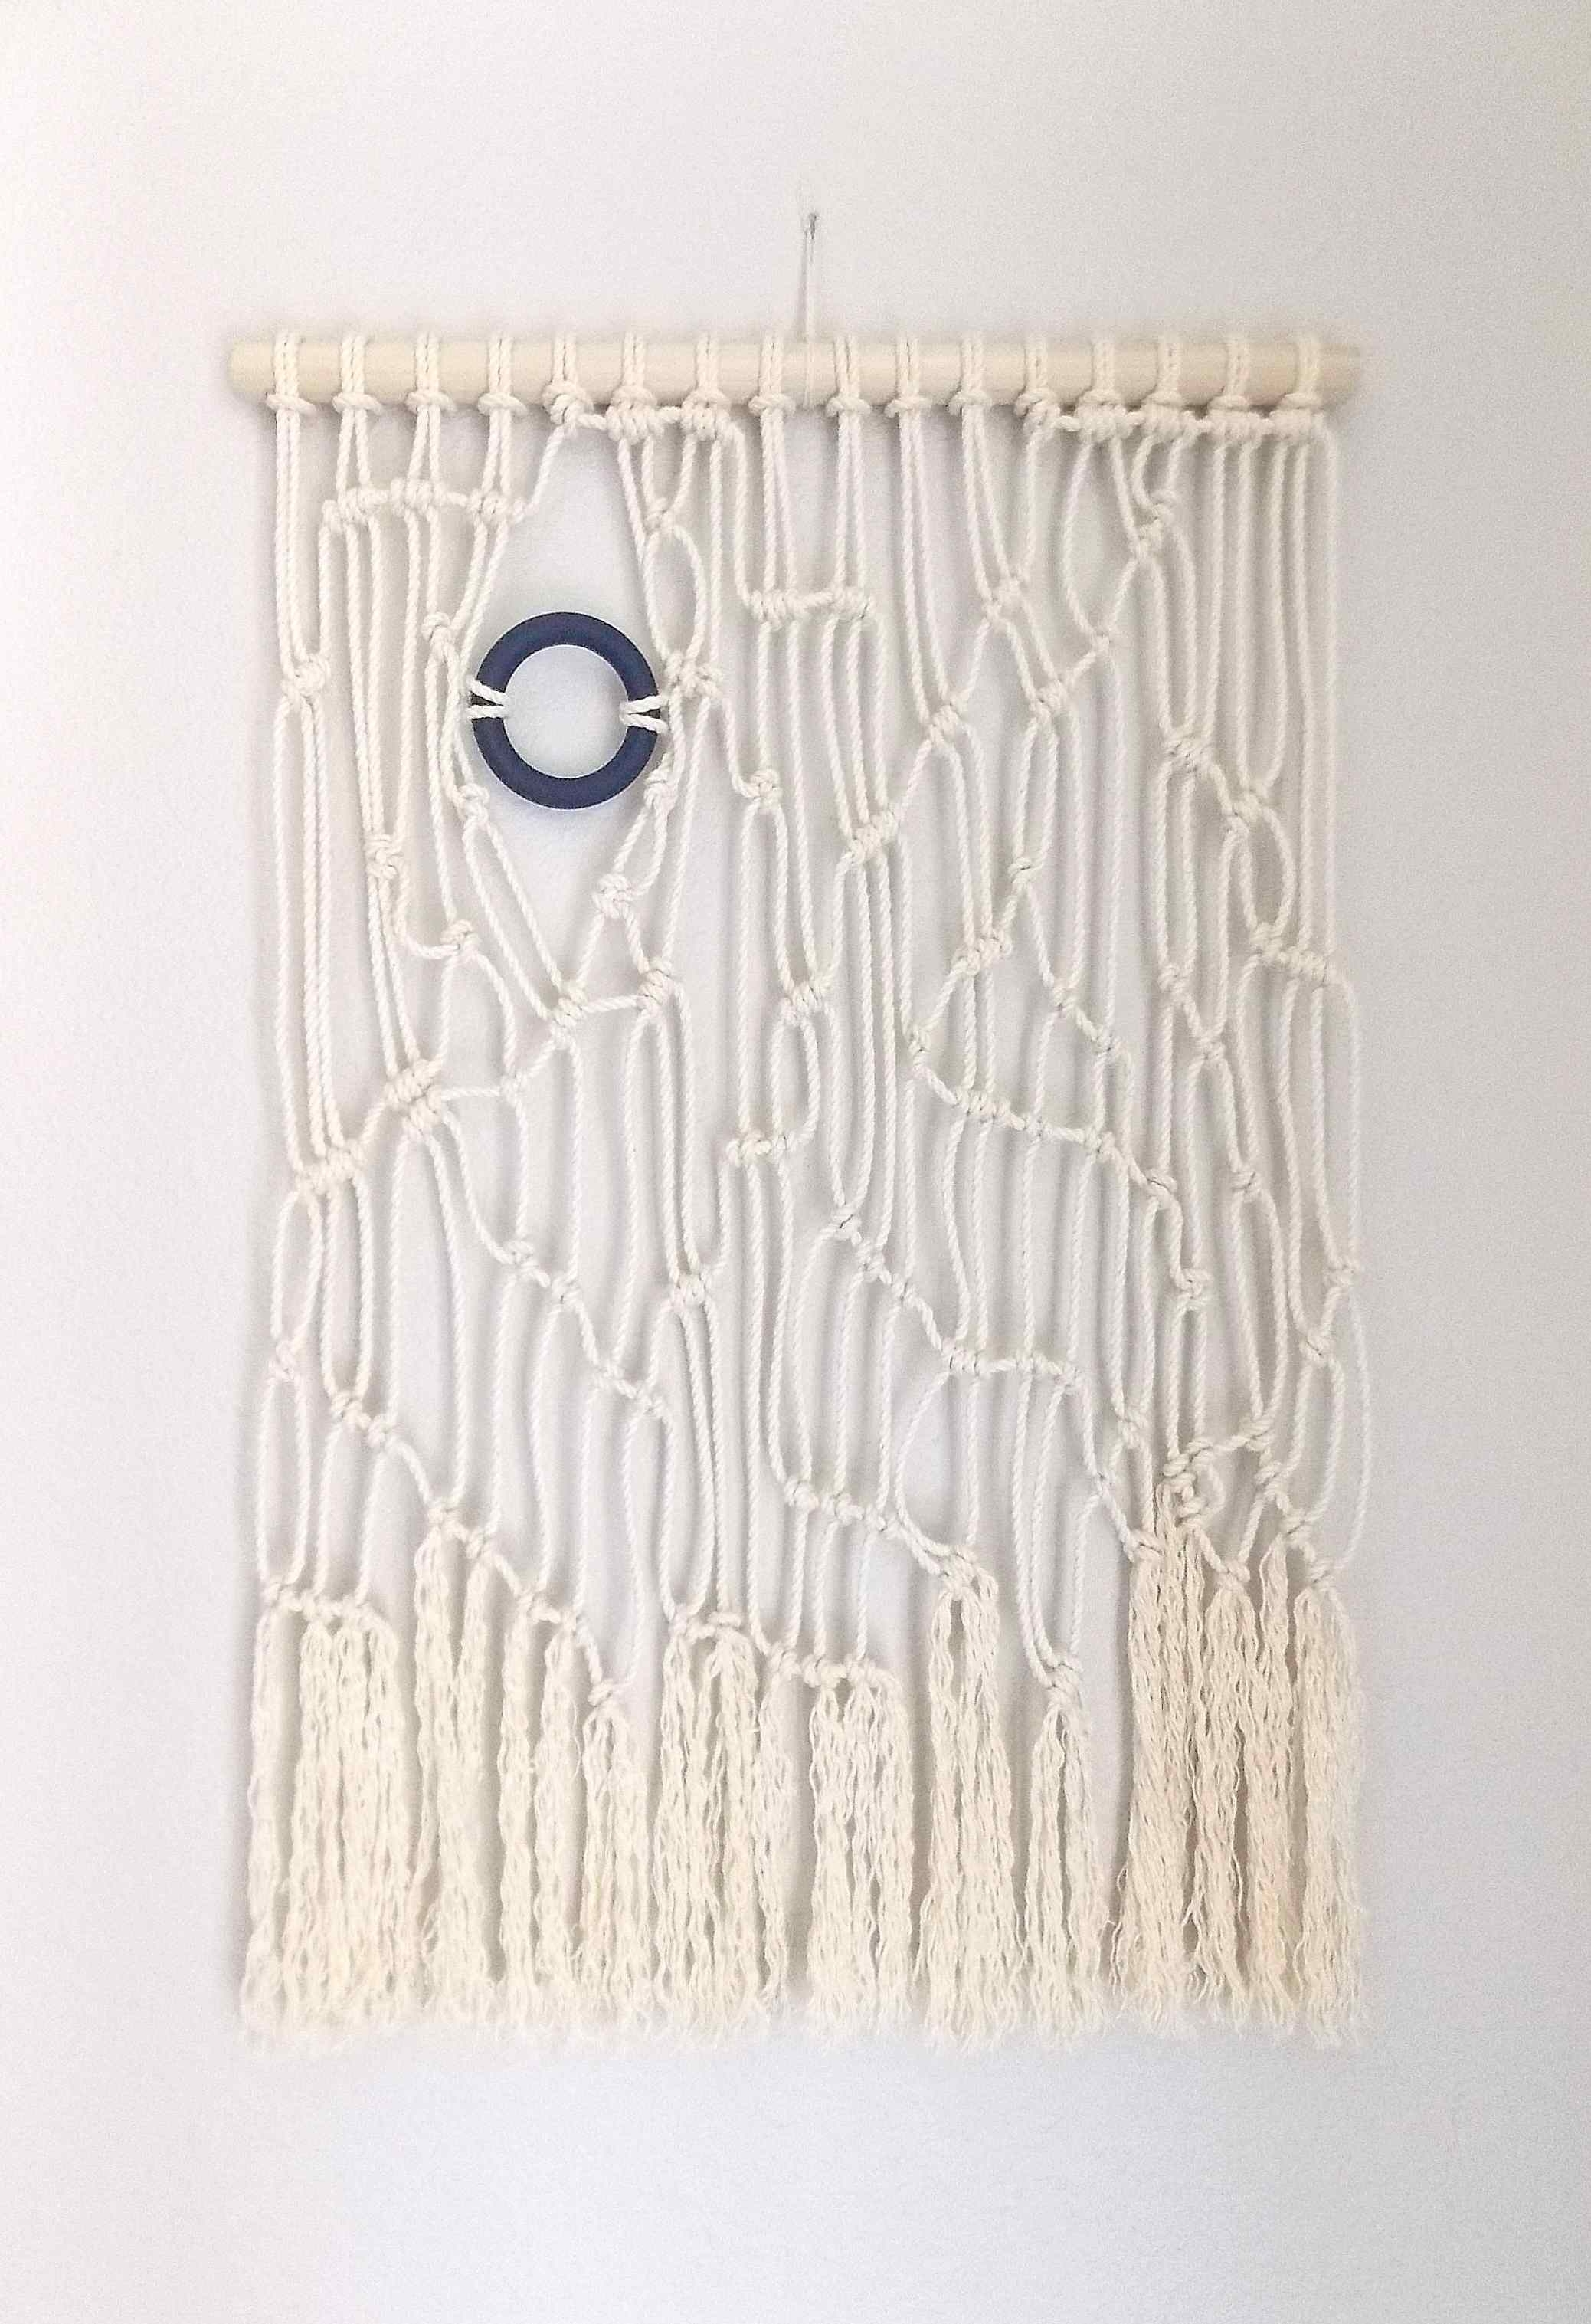 Himo Art For Urban Outfitters, Modern Macrame Wall Hanging, Rope pertaining to Urban Outfitters Wall Art (Image 10 of 20)